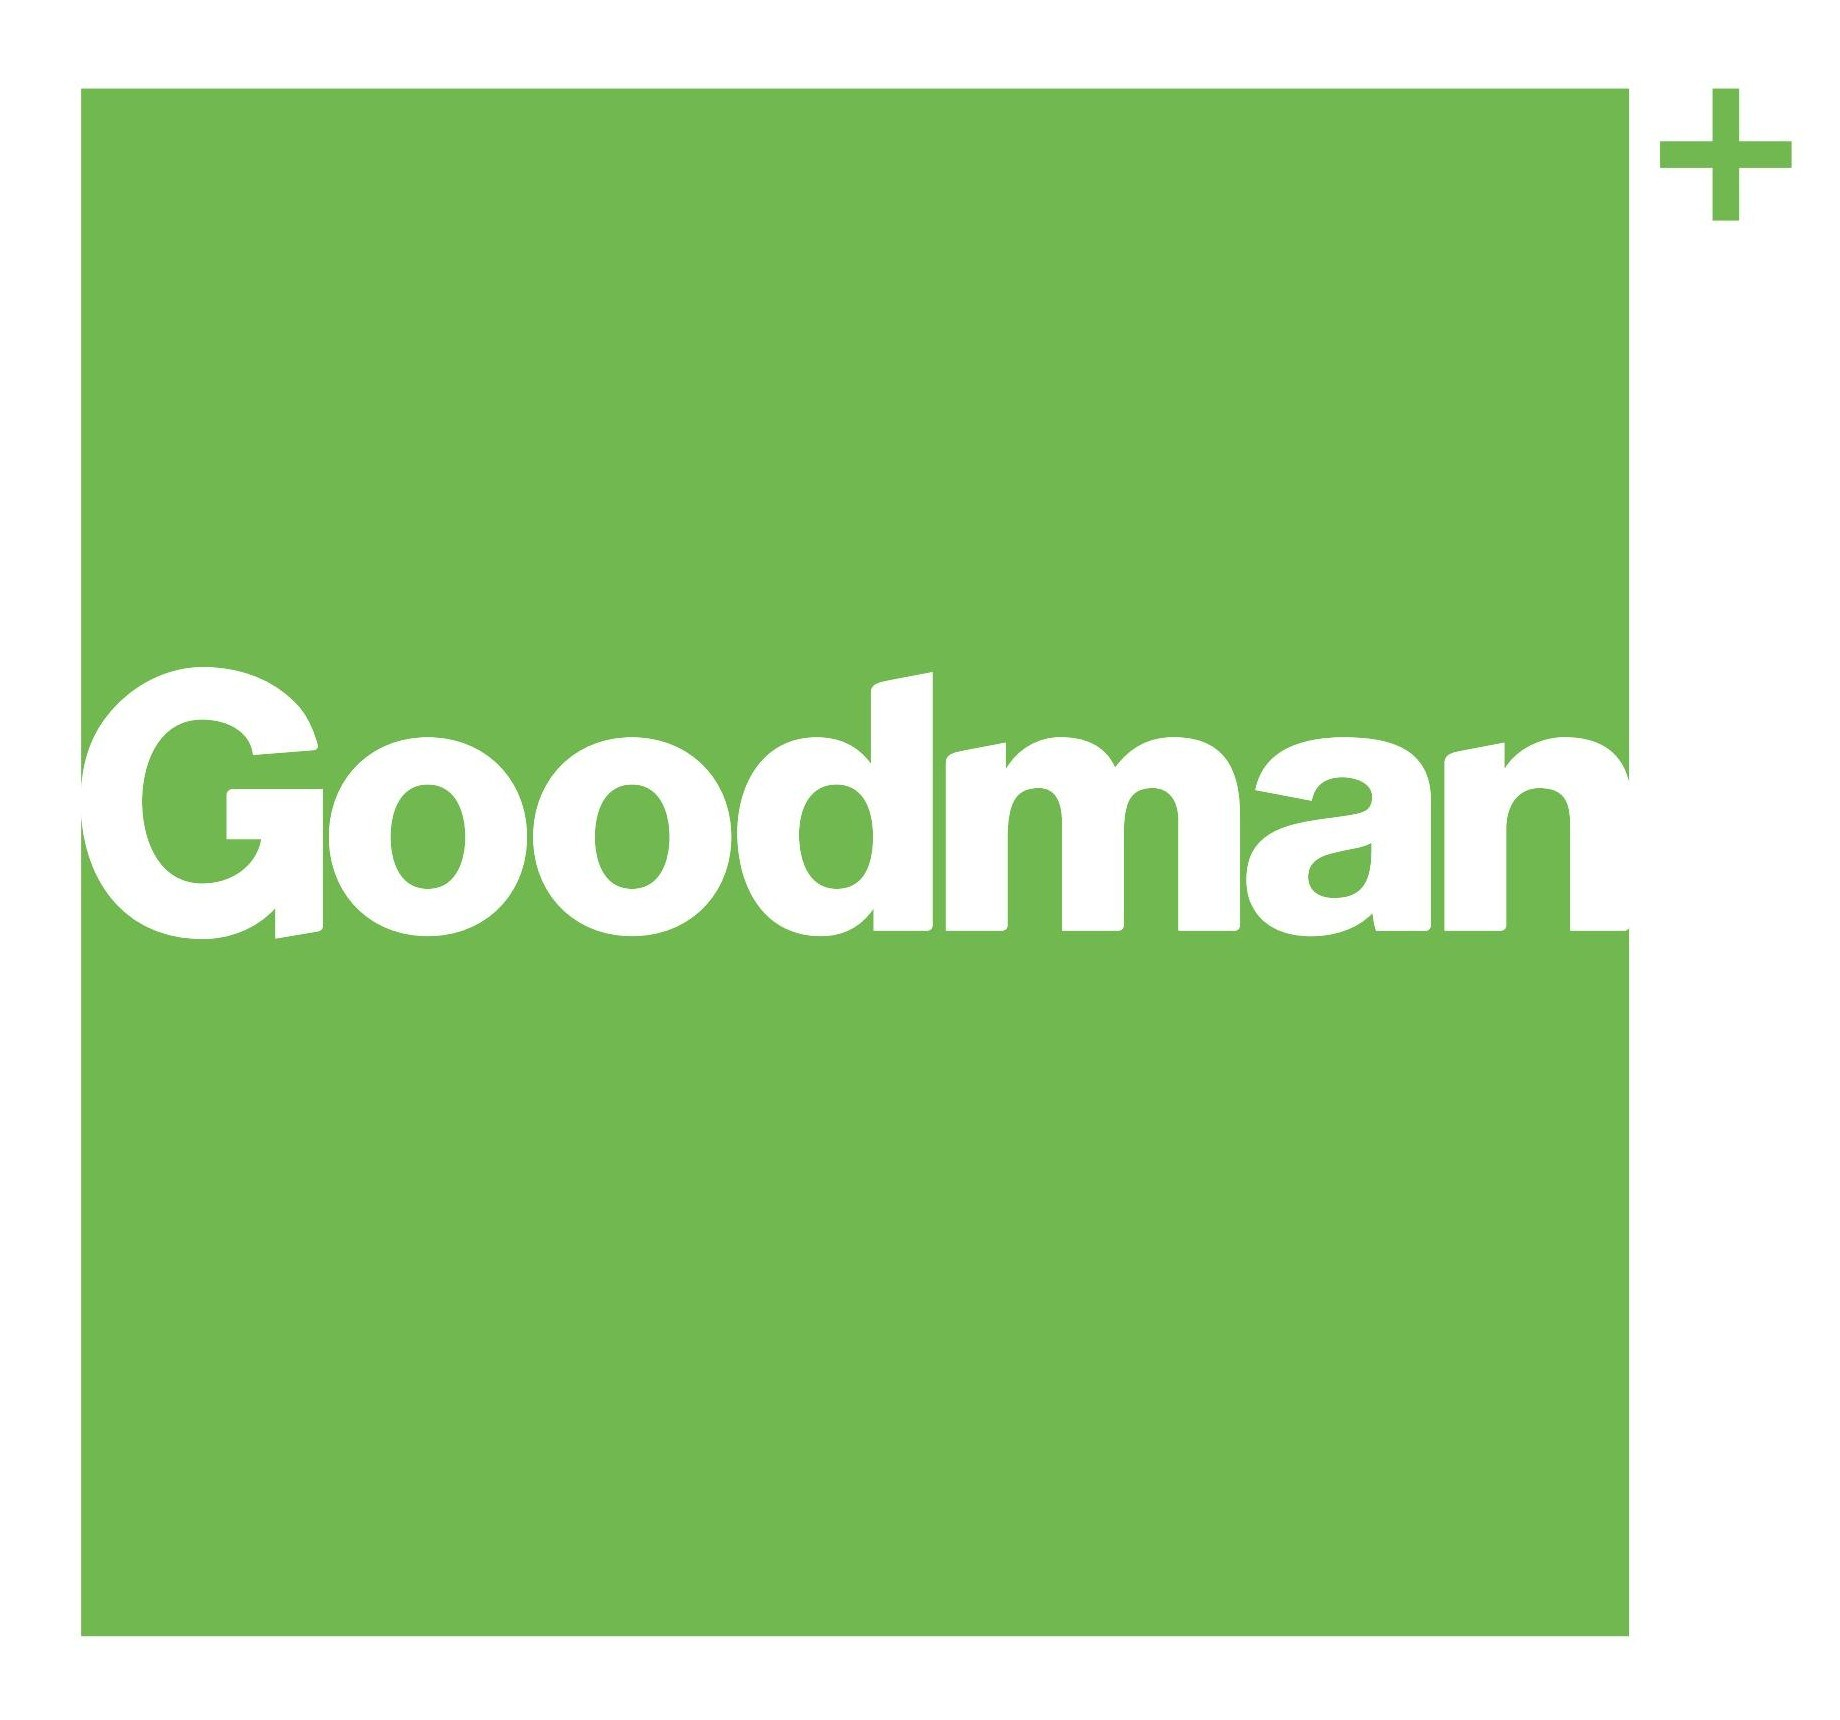 Goodman Is A Global Property Expert In Logistics And Business Space